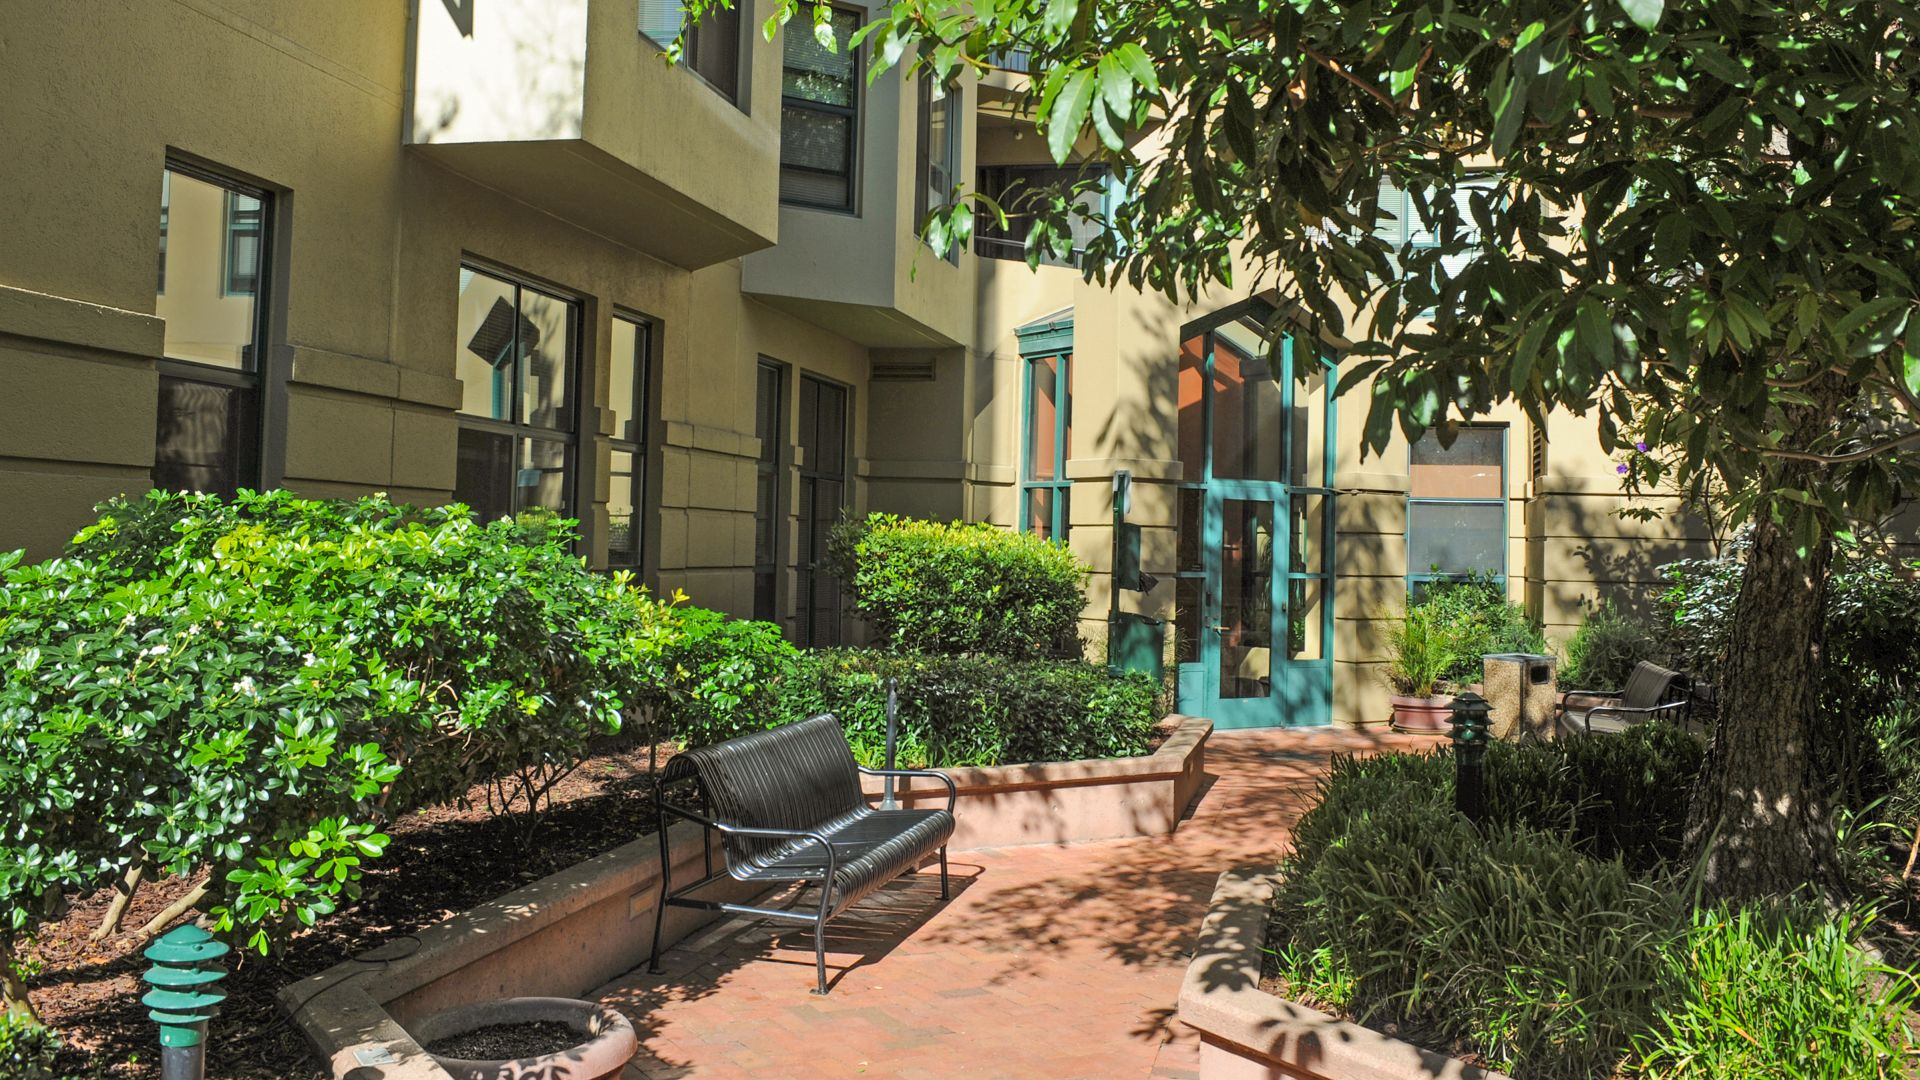 Geary Courtyard Apartments - Courtyard